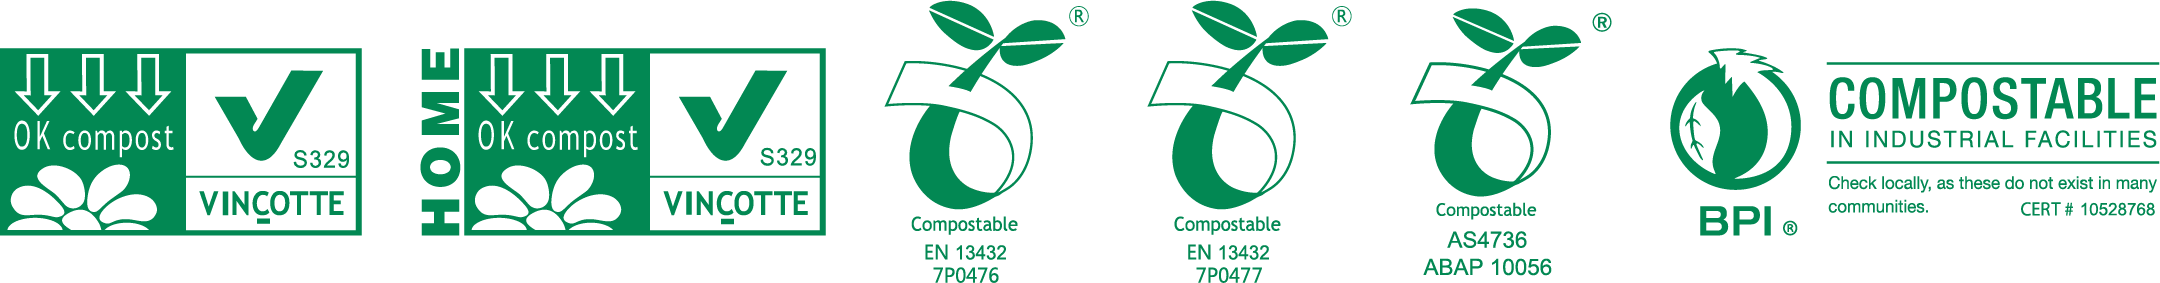 Oh Crap Compostable Certifications Logo's